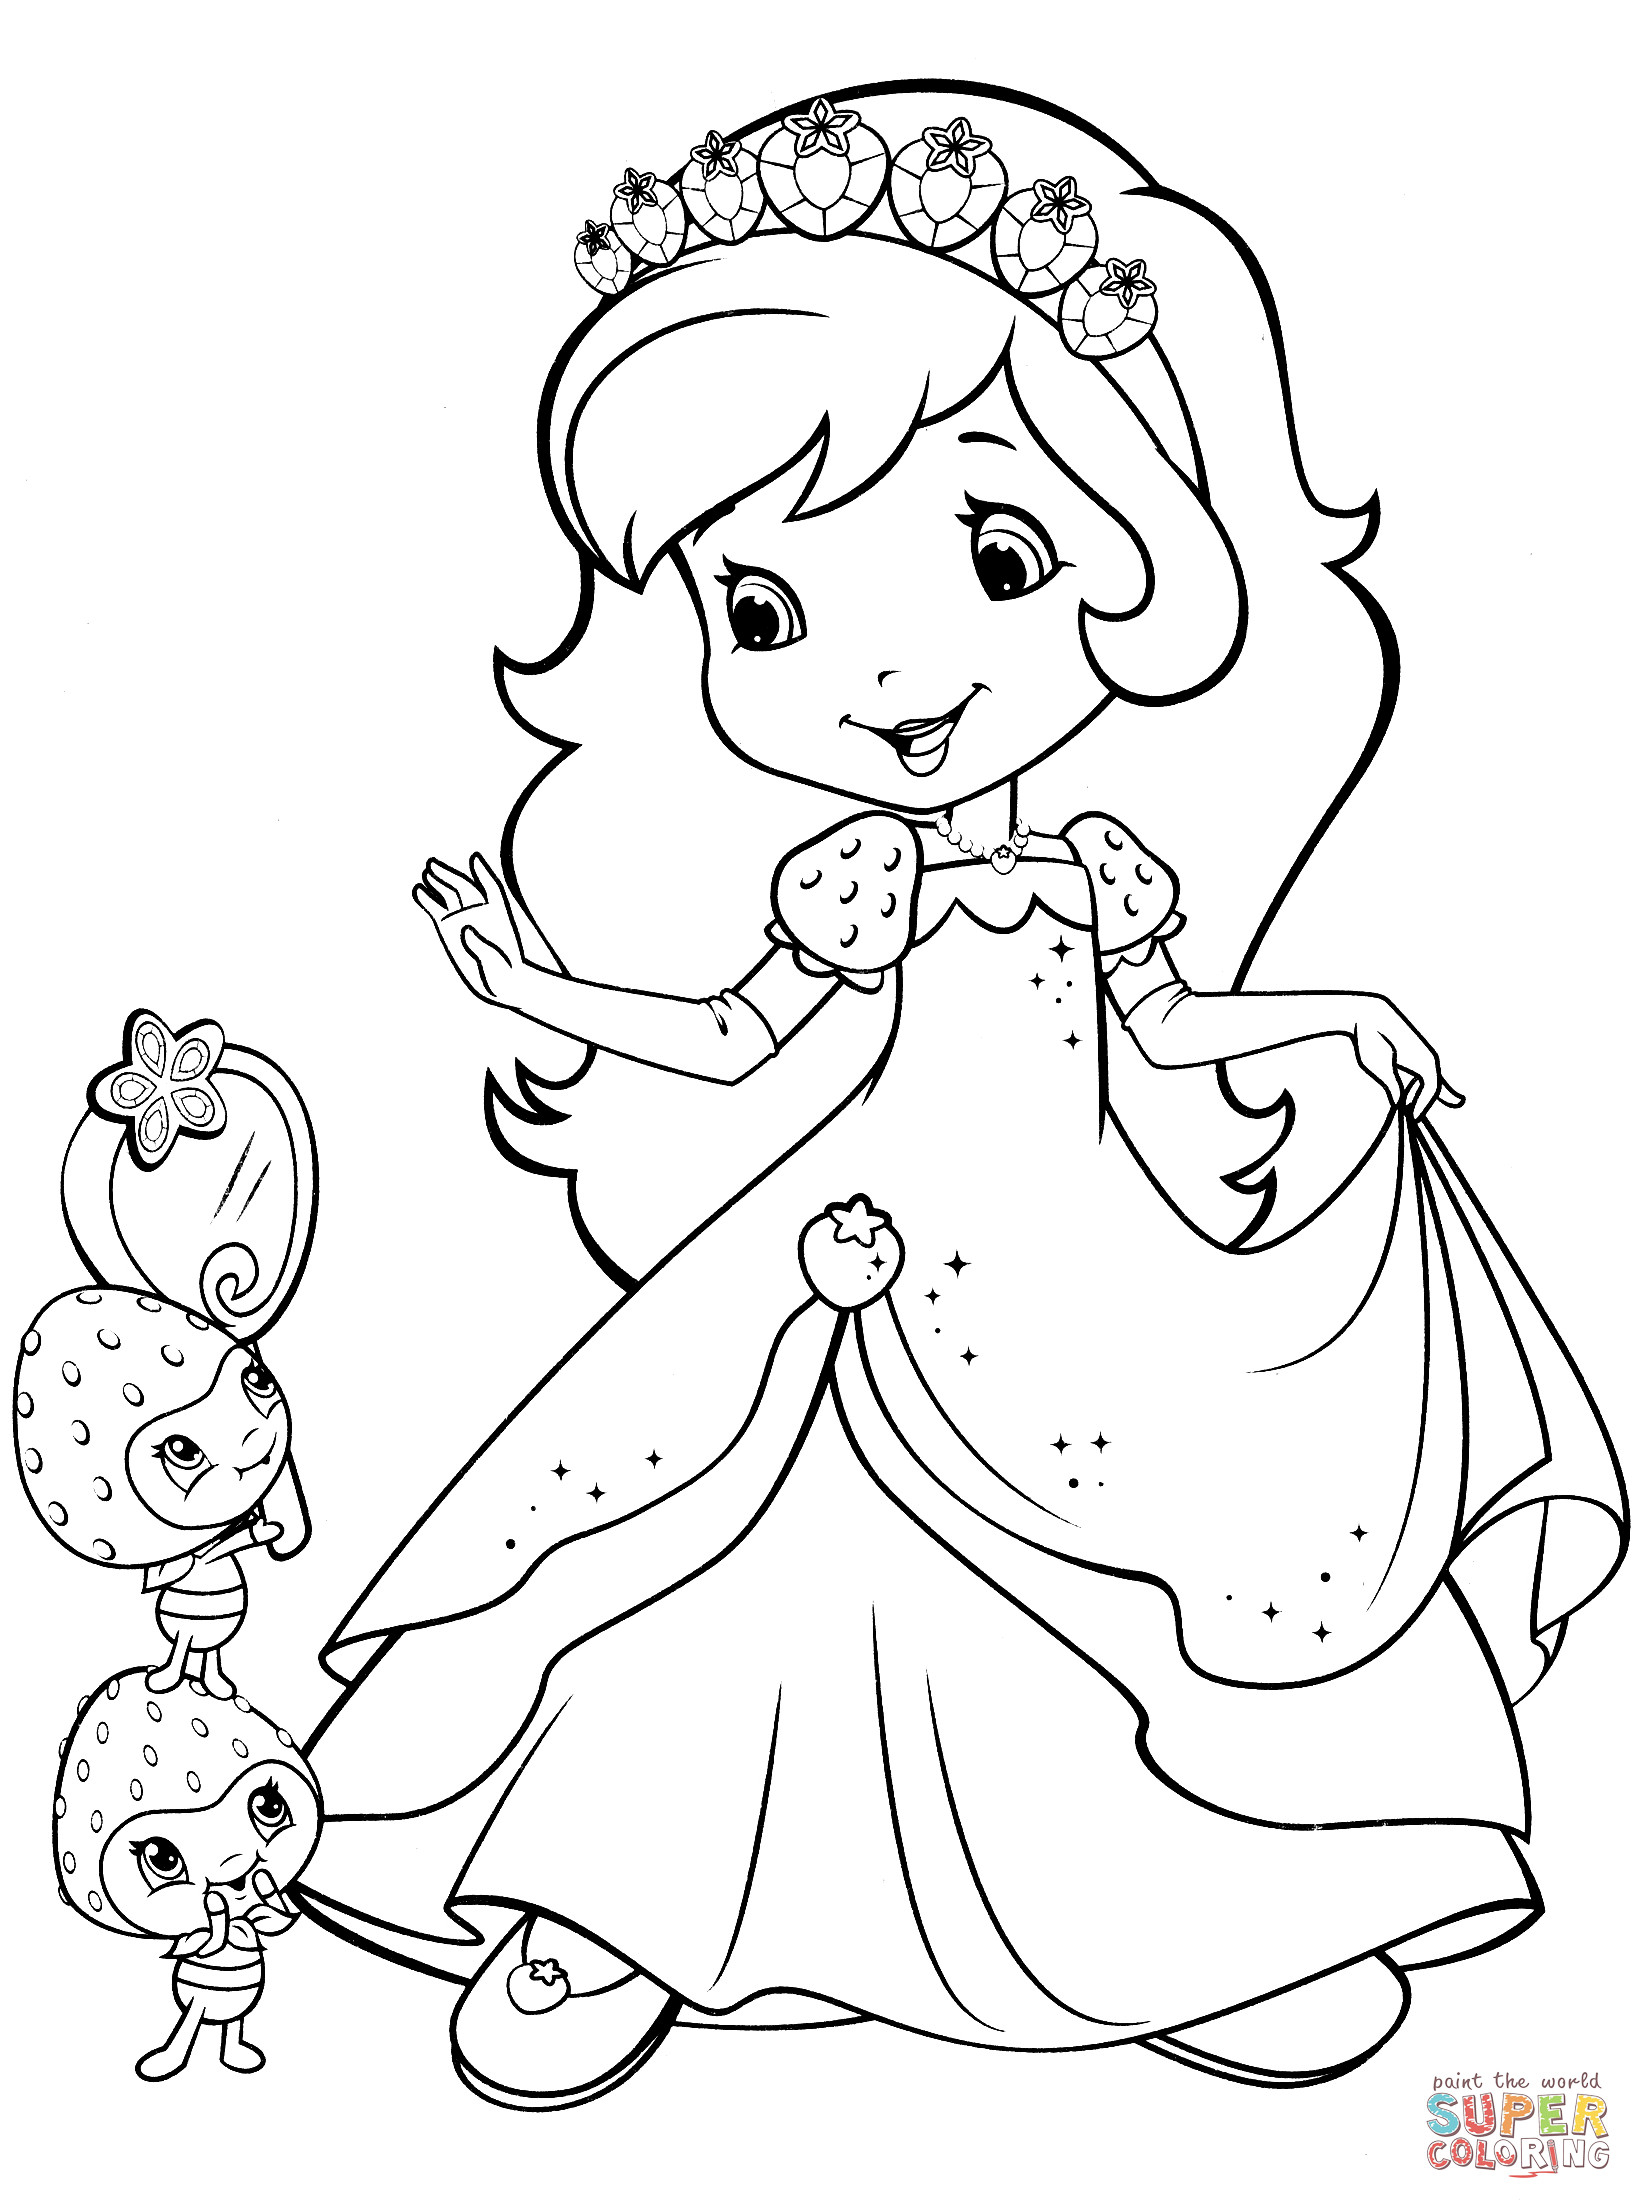 Strawberry Shortcake Coloring Pages  Printable 8a - Free For Children